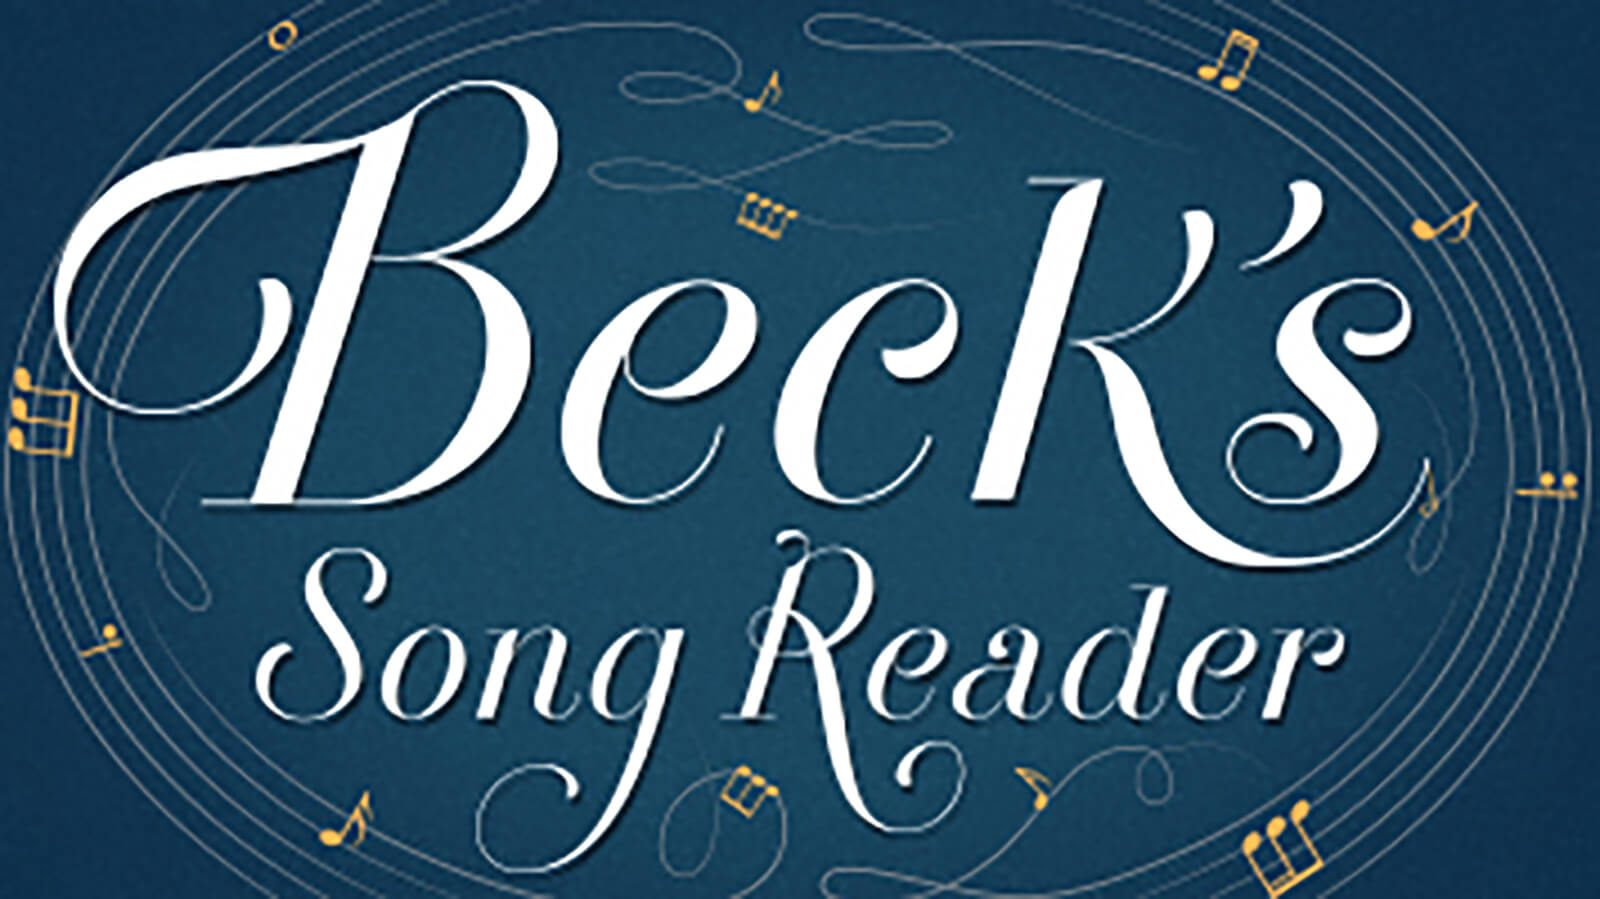 Full Sail's Beck 'Song Reader' Recording Project and Contest - Hero image